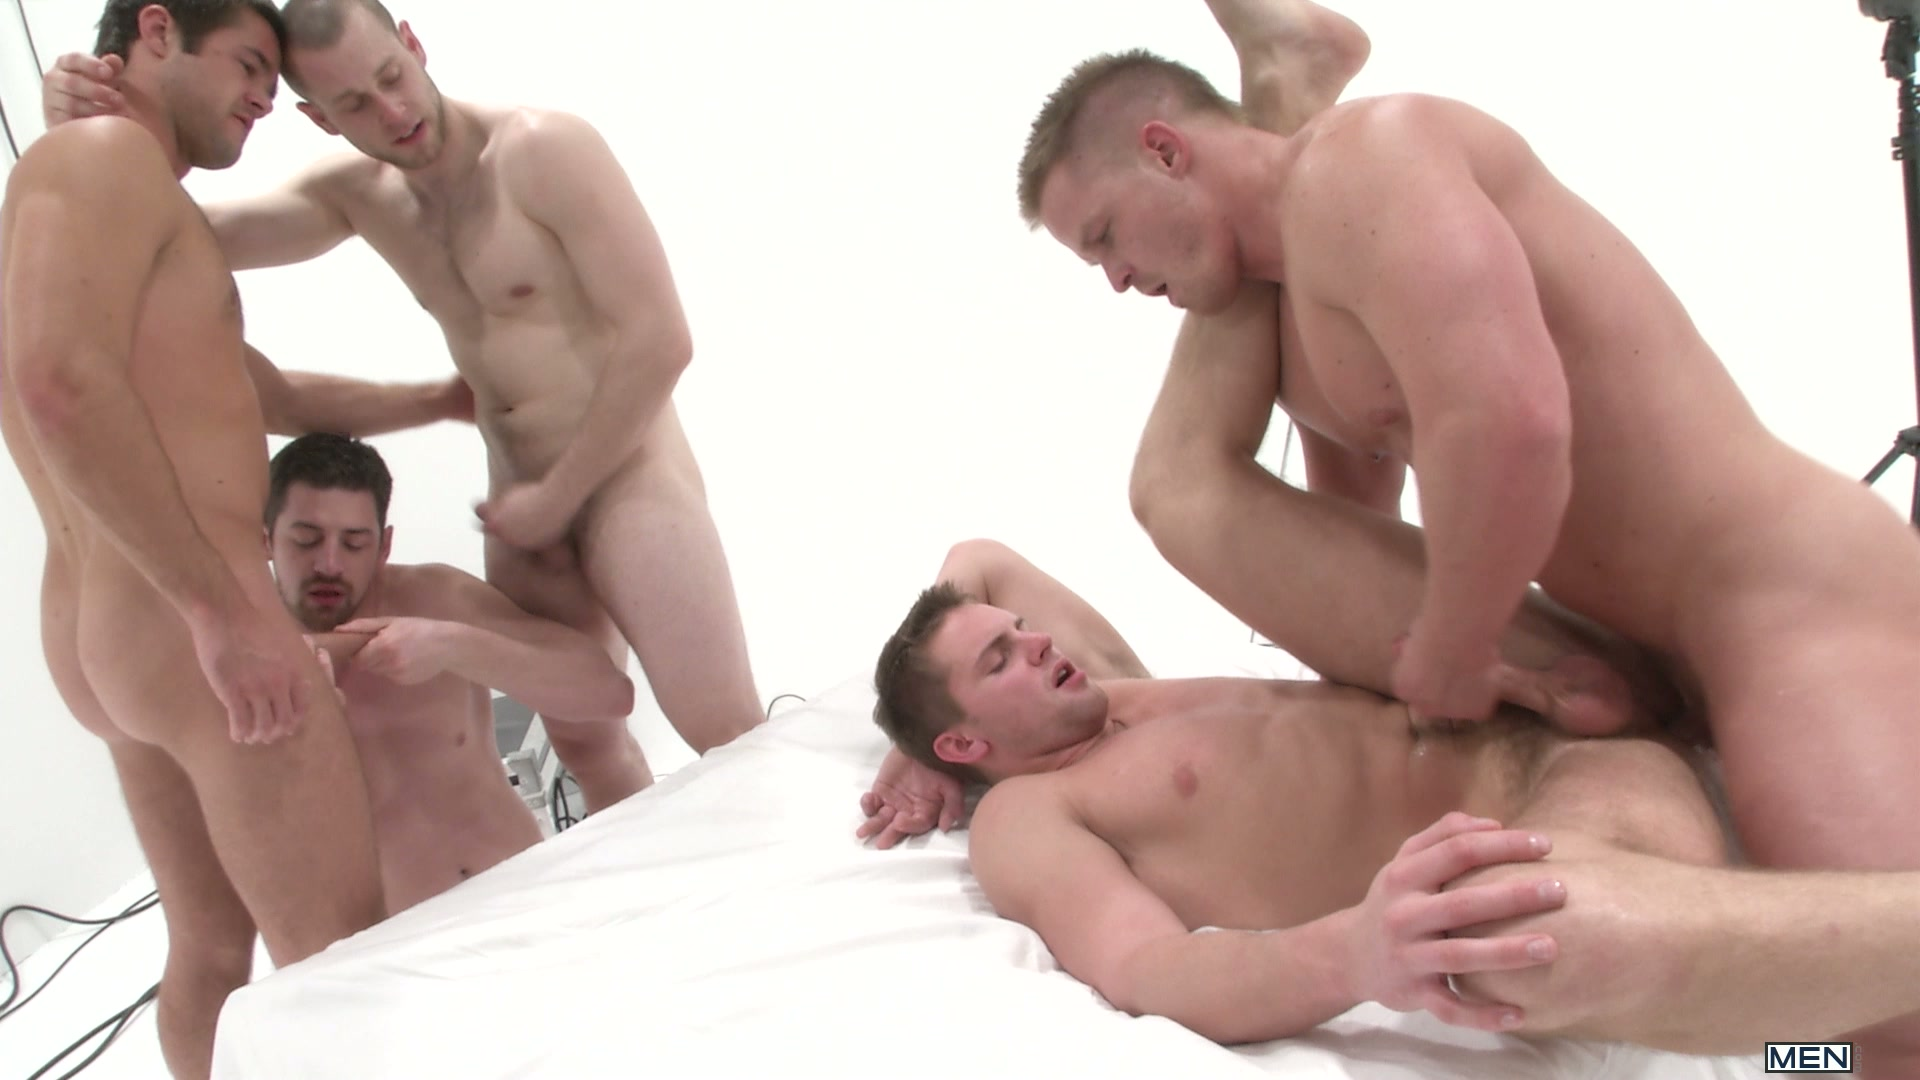 Watch The Room – Jo – Jizz Orgy – Andrew Stark – Mike De Marko – Jake Wilder – Kurt Von Ryder And Liam Magnuson (MEN.COM) Gay Porn Tube Videos Gifs And Free XXX HD Sex Movies Photos Online